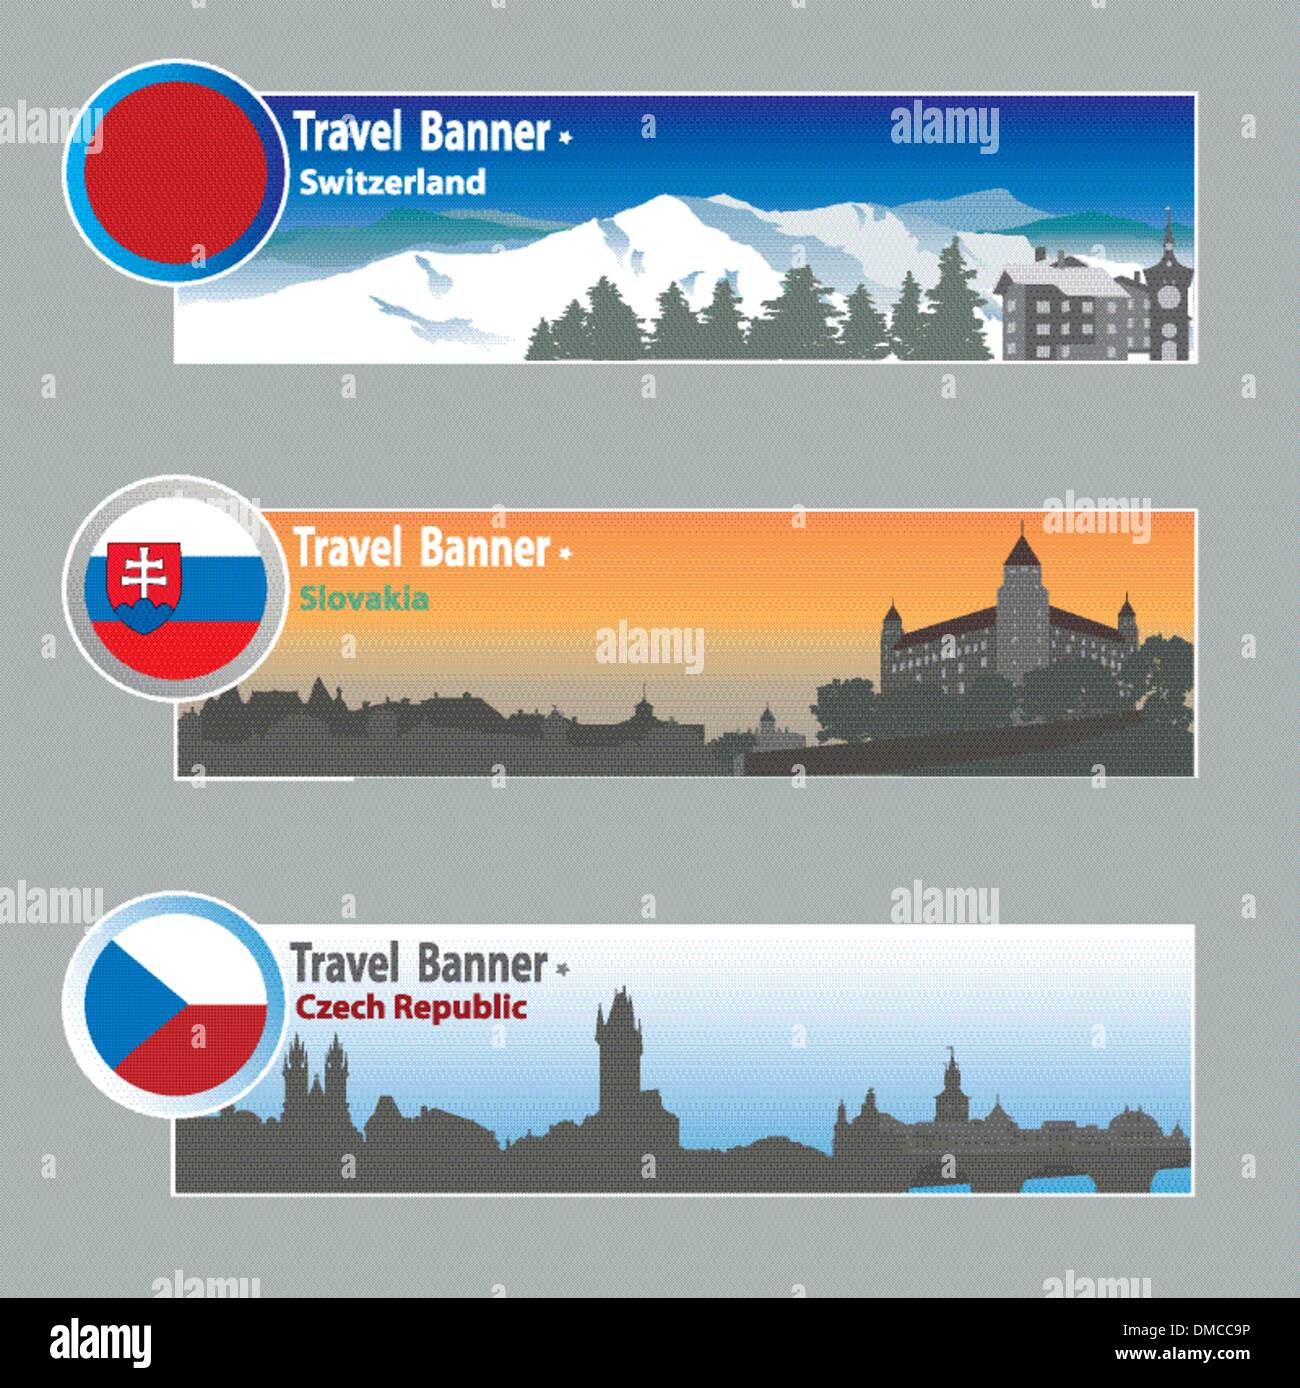 Travel banners - Stock Vector